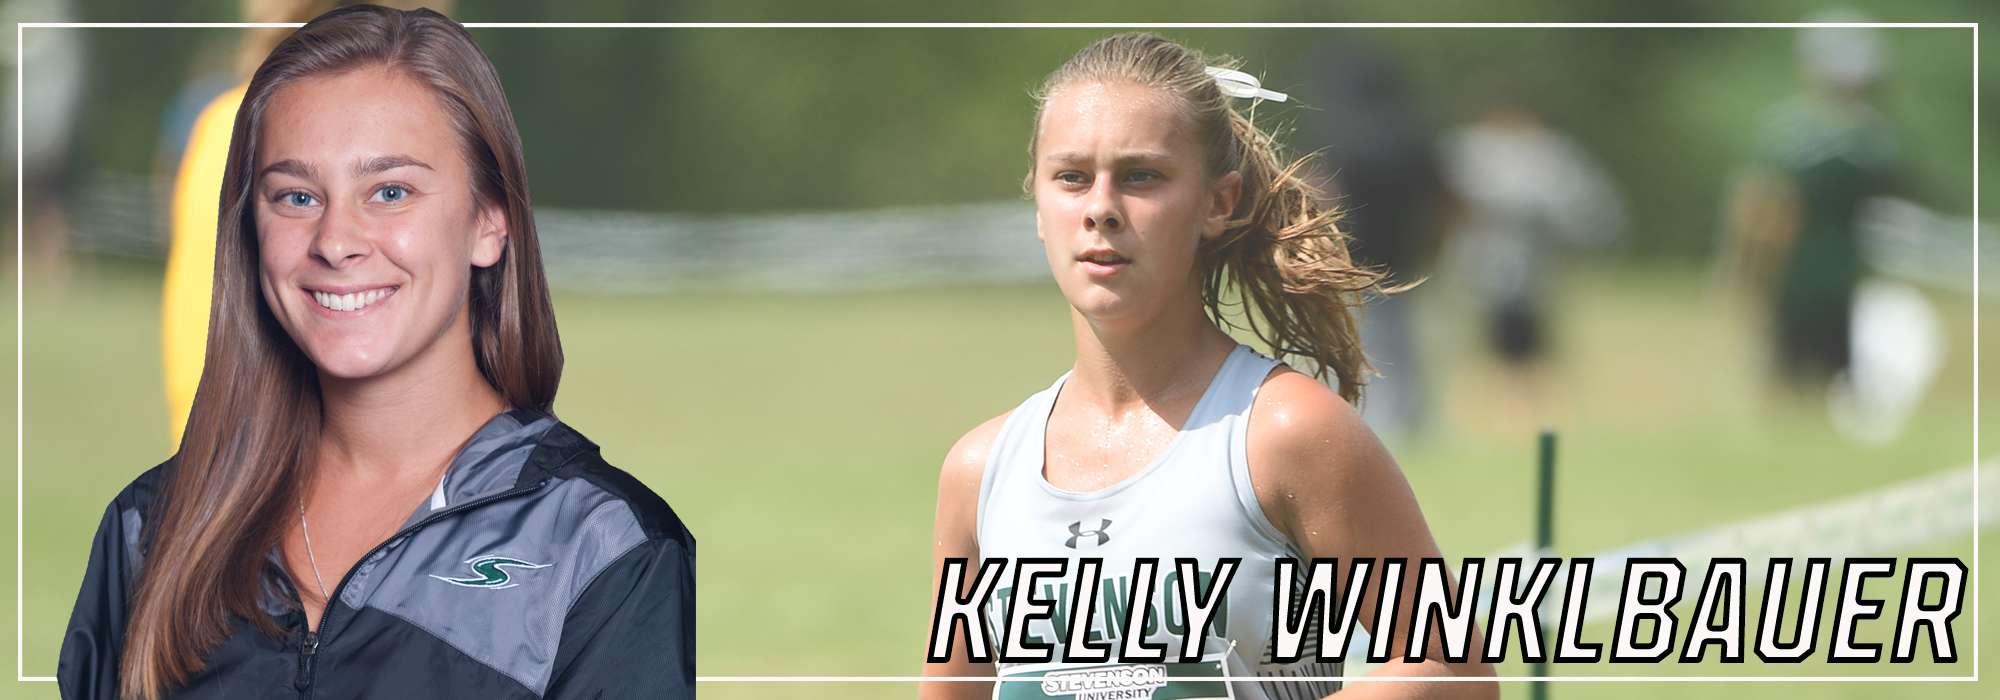 Kelly Winklbauer Named MAC Runner of the Week